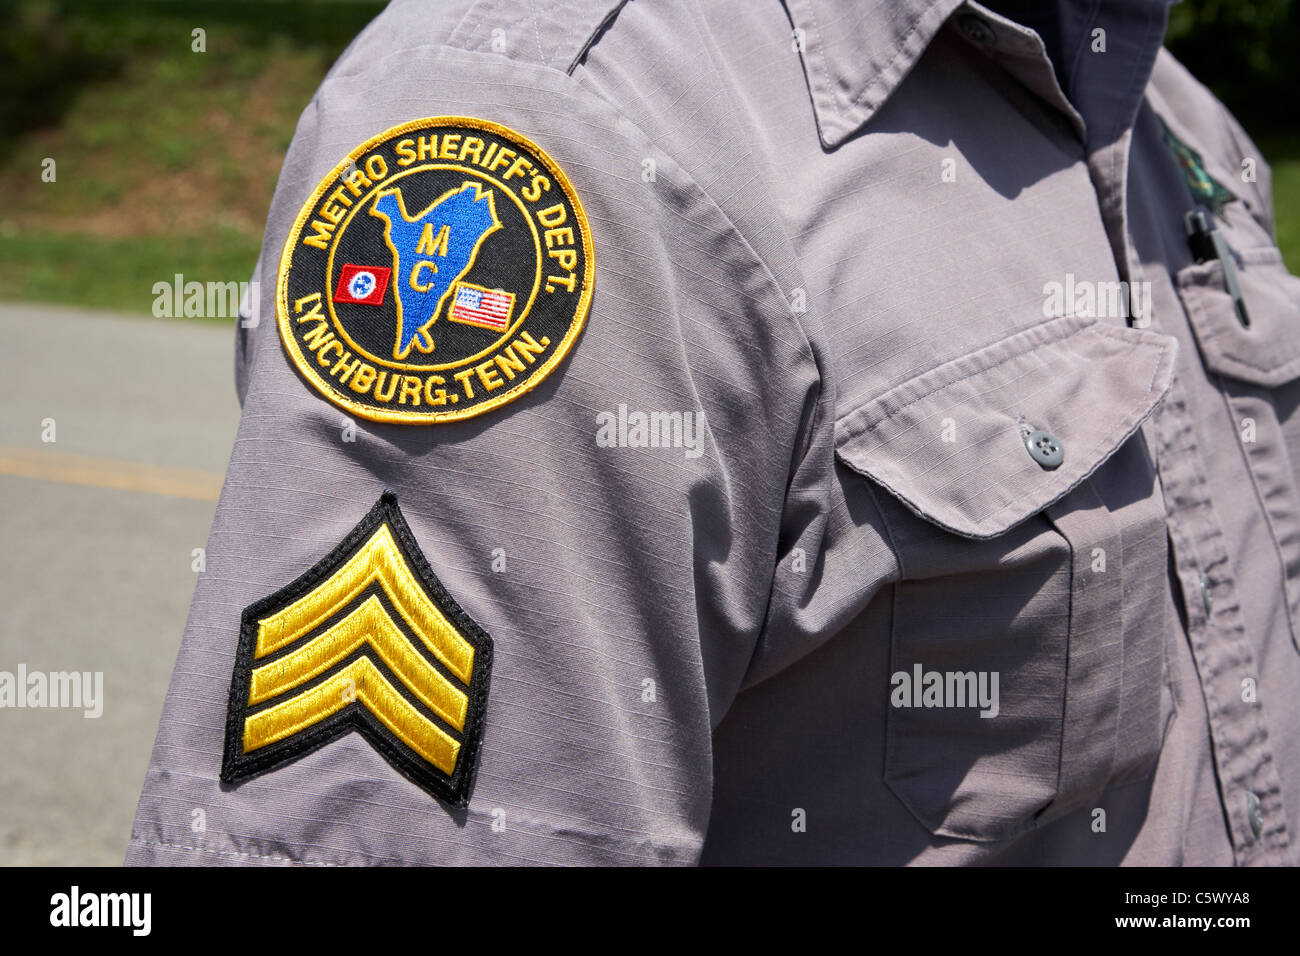 sergeant at metro sheriffs dept moore county Lynchburg , tennessee , usa - Stock Image